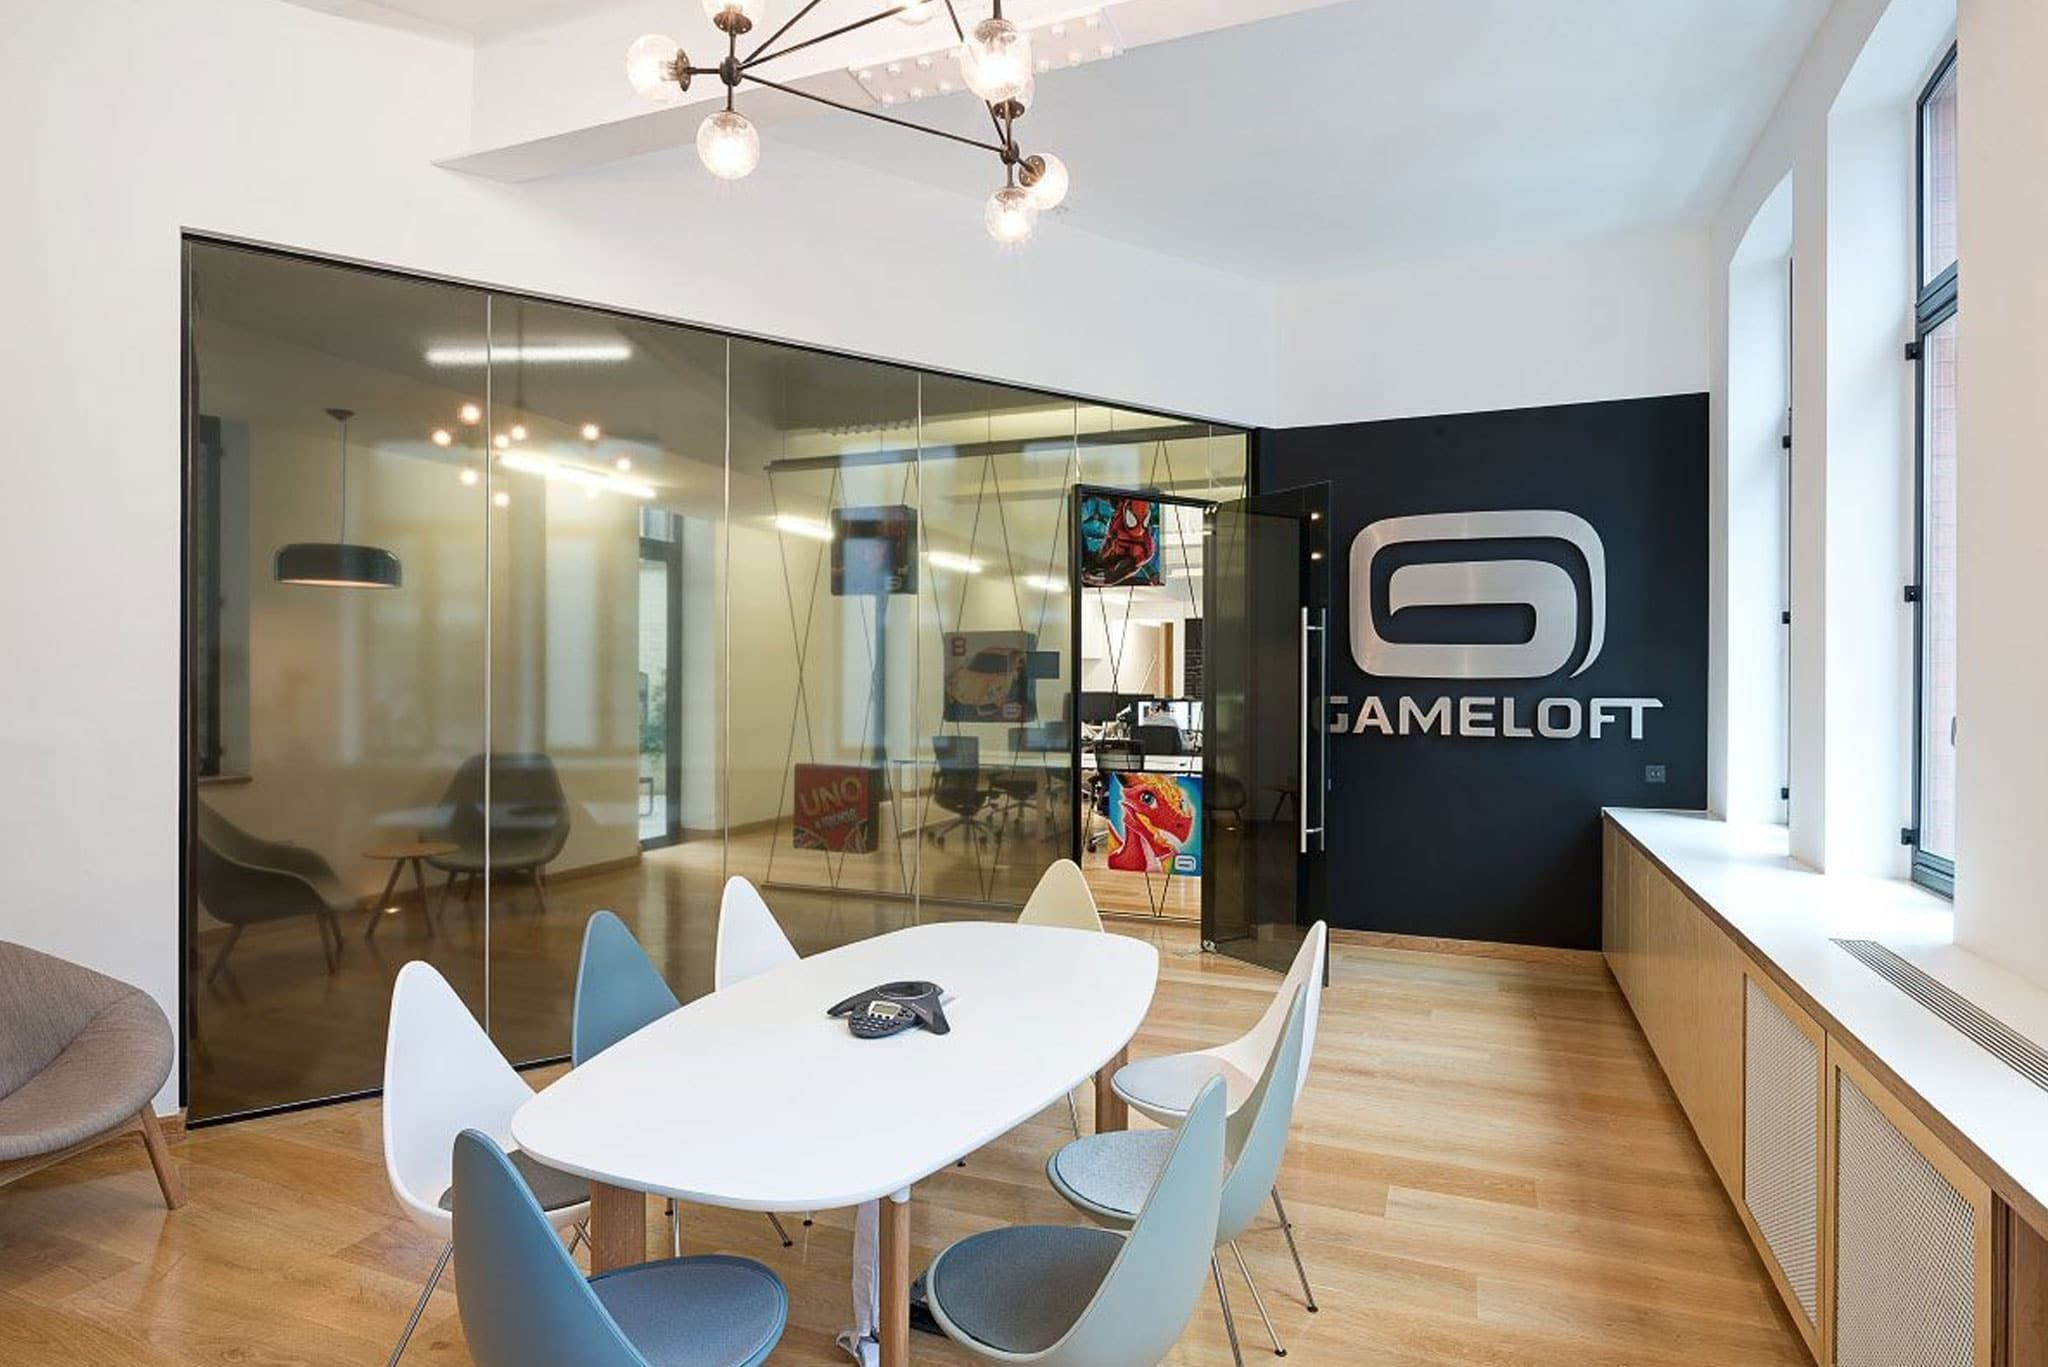 This Meeting Room For A Gaming Company Reinforces The Brand